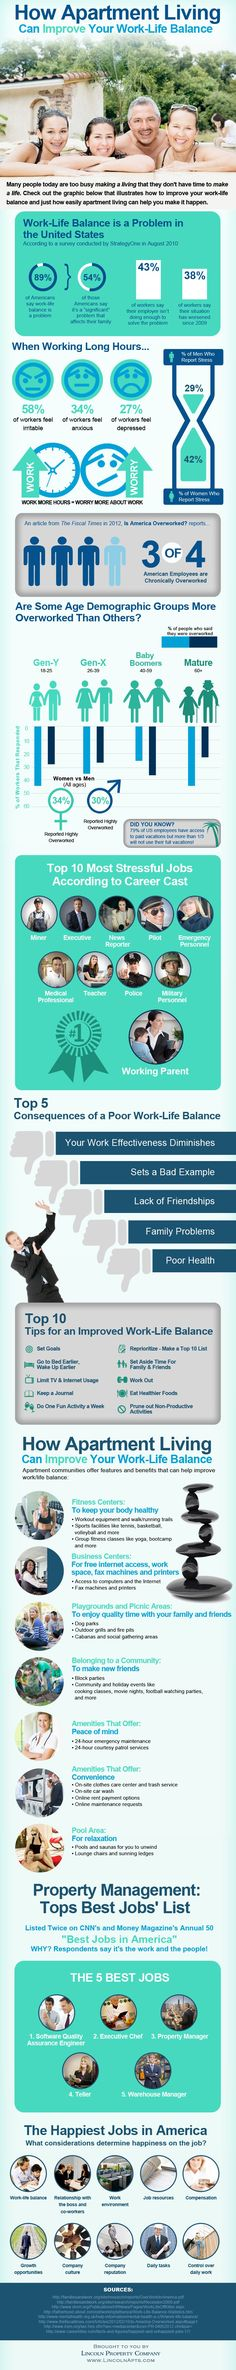 Our infographic titled & Apartment Living Can Improve Your Work-Life Balance& shows how living in a supportive apartment community can help offset the stress of work. Resident Retention, Property Management, Change Management, Stress Management, Residence Life, Apartment Communities, Porch Lighting, Work Life Balance, Property For Rent